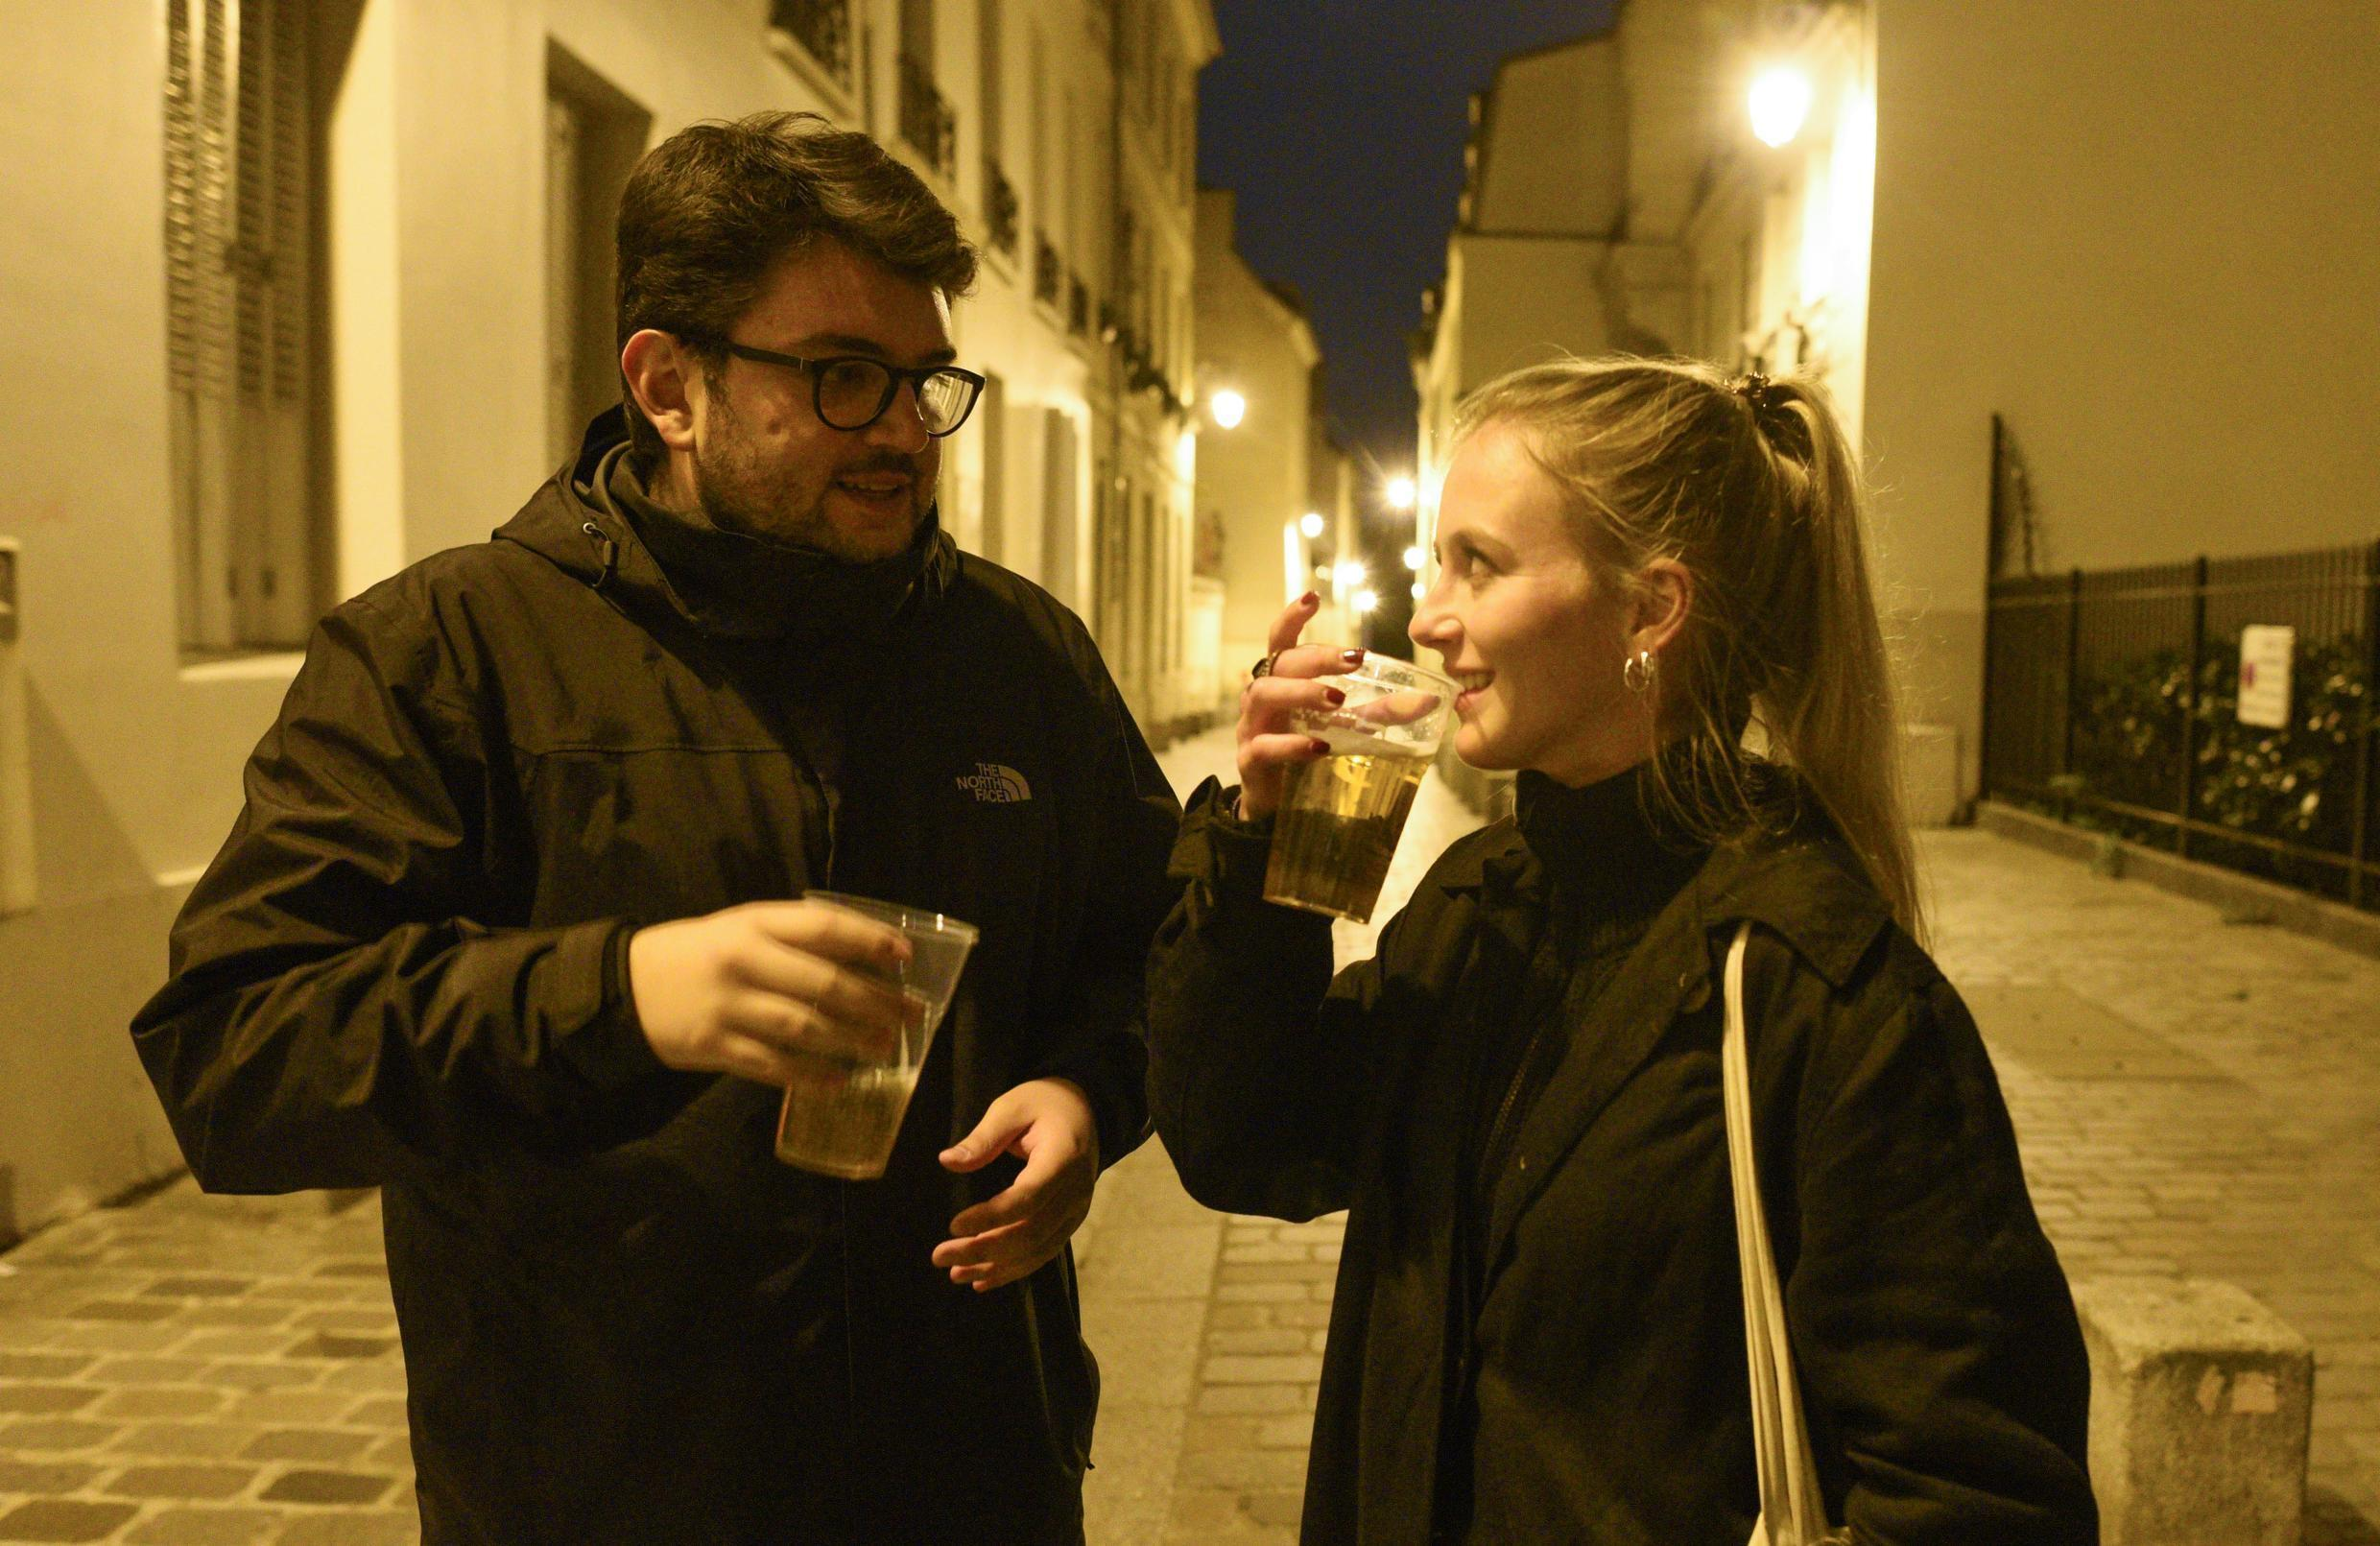 Giulano Binda and Isabella Foglia, two students from Switzerland, enjoy their last drink in a plastic cup outside after the bars closed for the Covid-19 lockdown on October 17 in Paris.